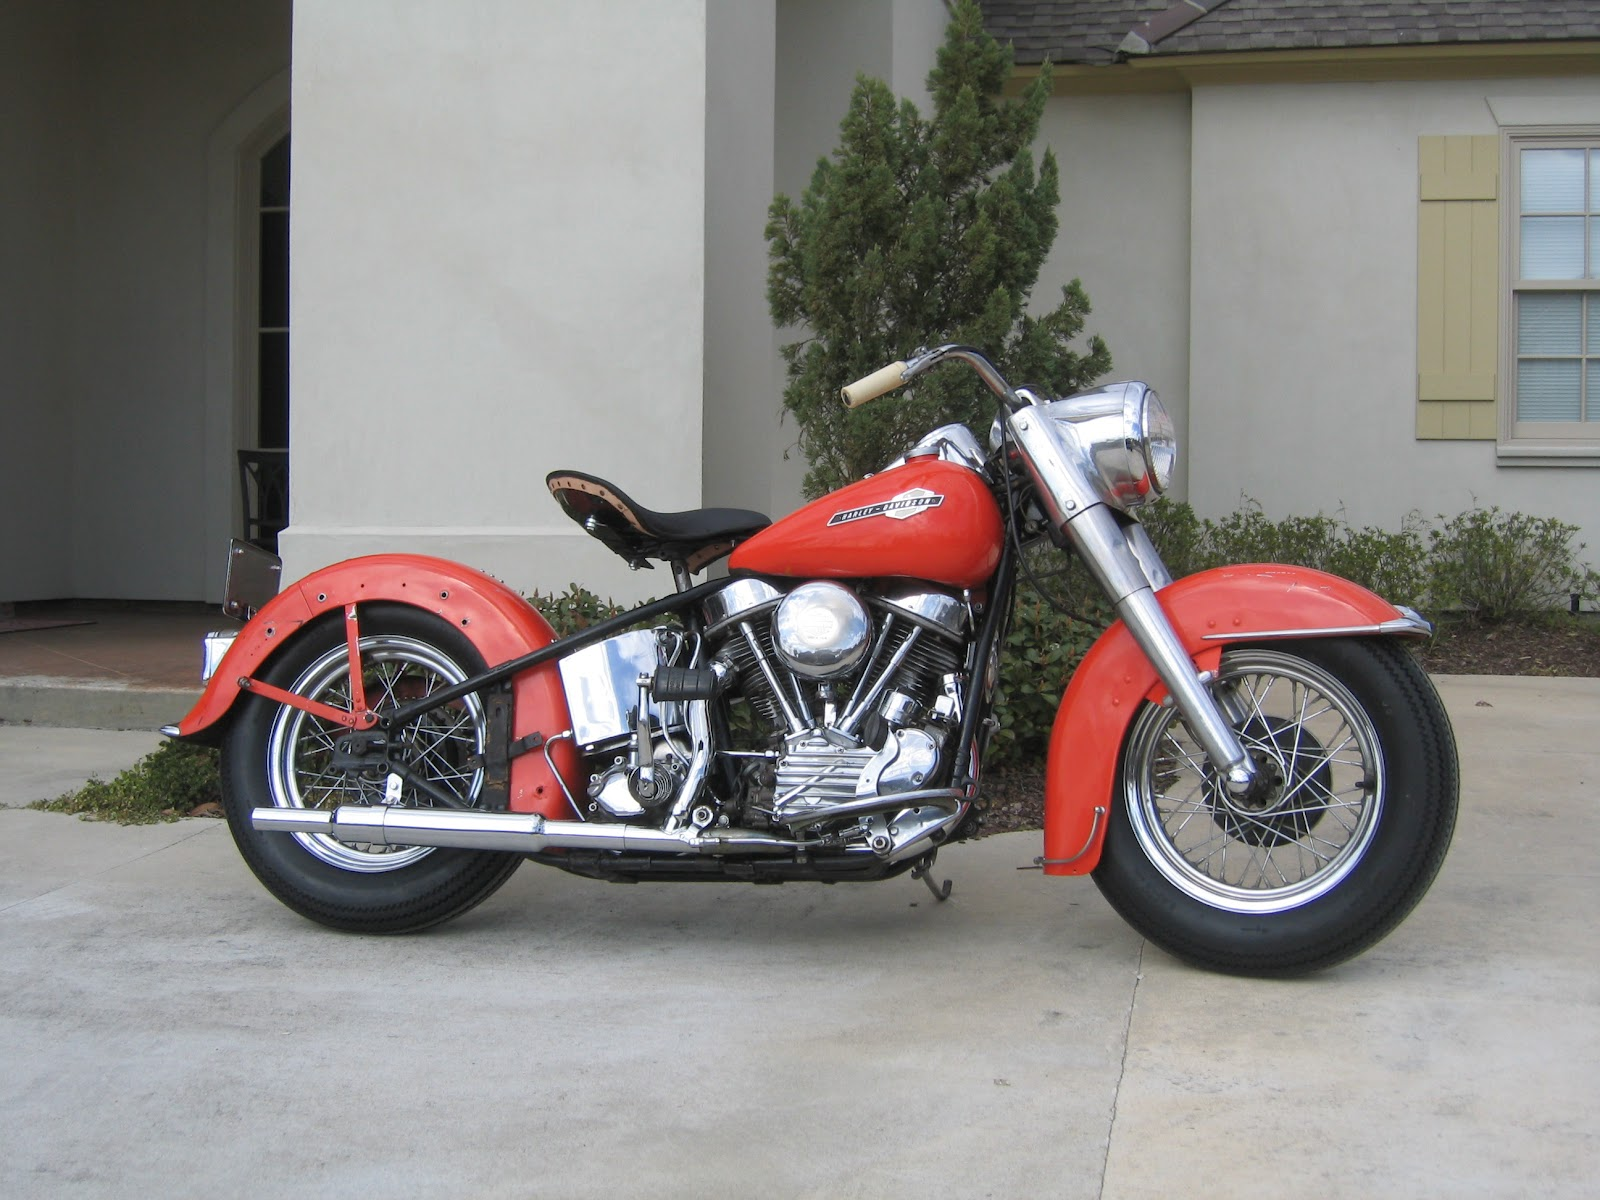 Indian Motorcycles Announces 2016 Lineup additionally Browse Car Paint Colors Metallic Hd Photo Wallpaper Collection Hd likewise Iron 883 Bobber in addition 2017 Trike Freewheeler Harley Davidson Review Price as well 1950 Panhead. on 2017 harley davidson paint colors